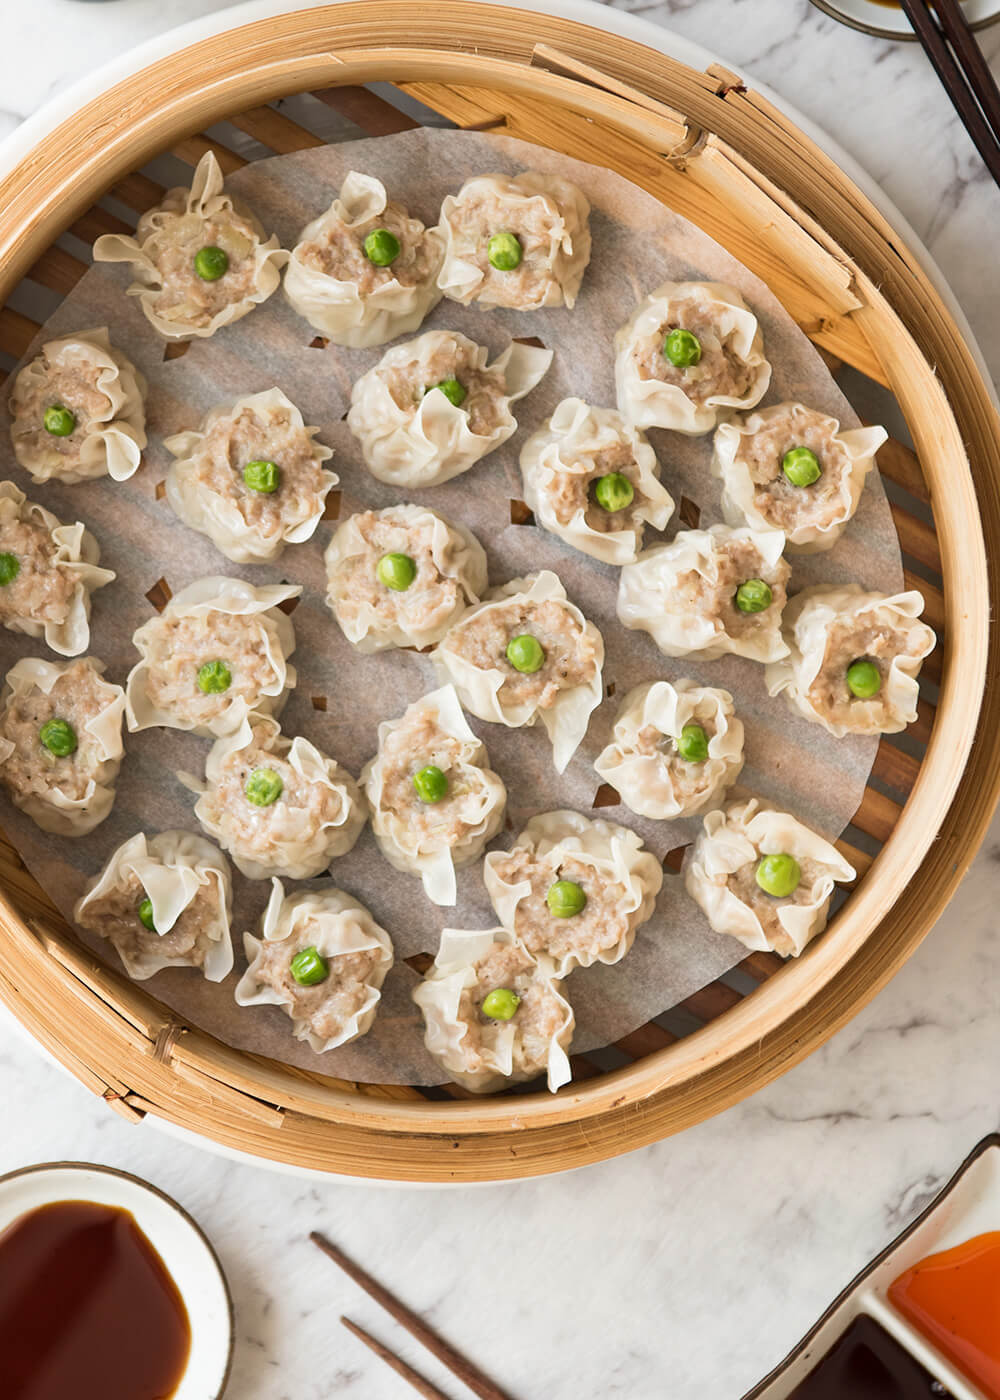 The Japanese version of steamed dumpling, shumai (or shao mai) is quite easy to make. It only contains pork mince, onion and few typical Japanese seasonings, but it tastes so good.